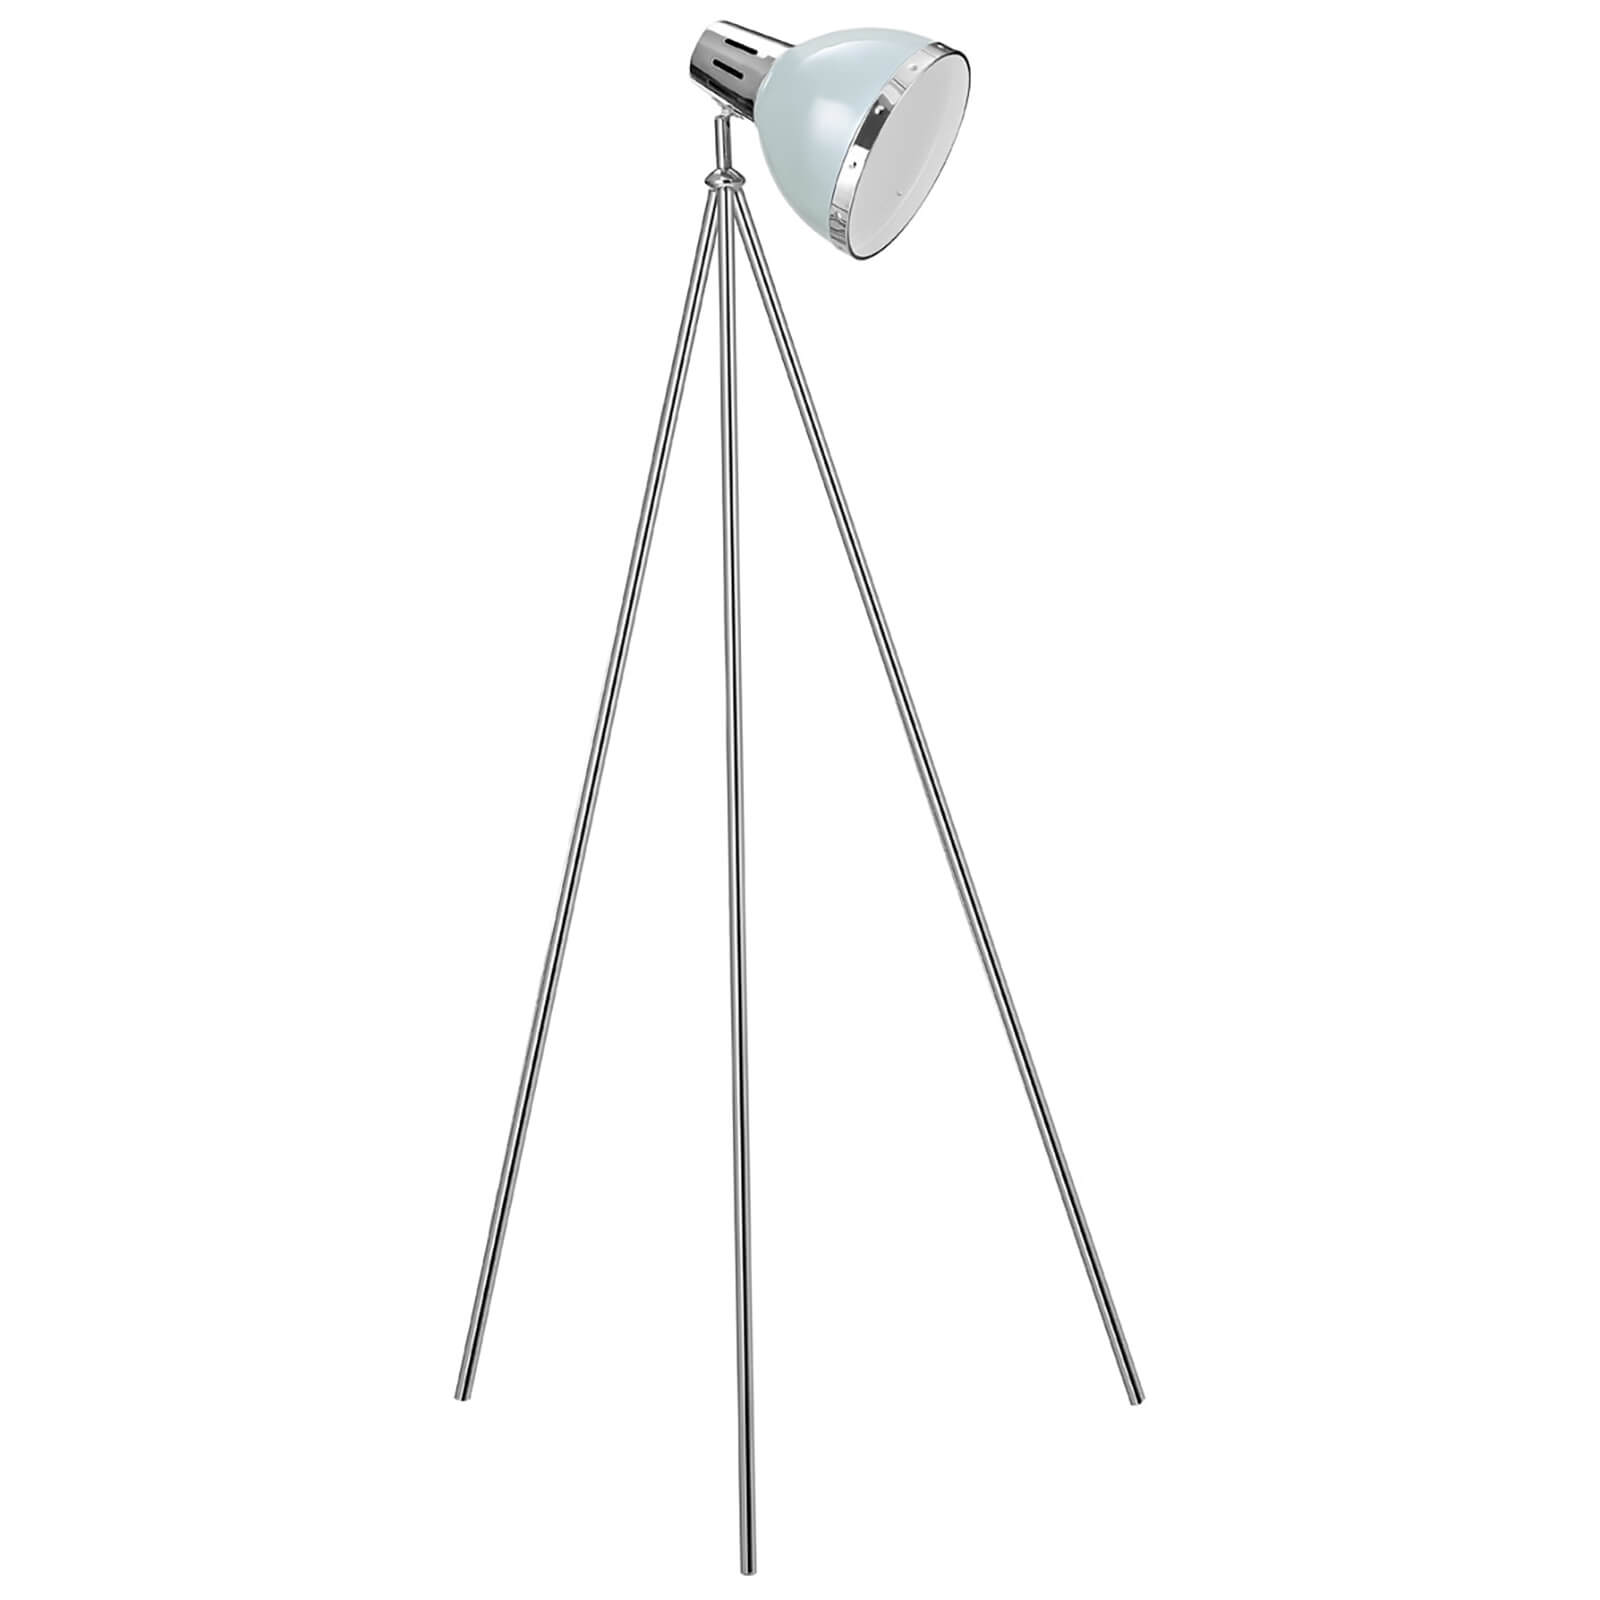 Fifty Five South Vermont Spotlight Floor Lamp - Shutter Blue/Chrome